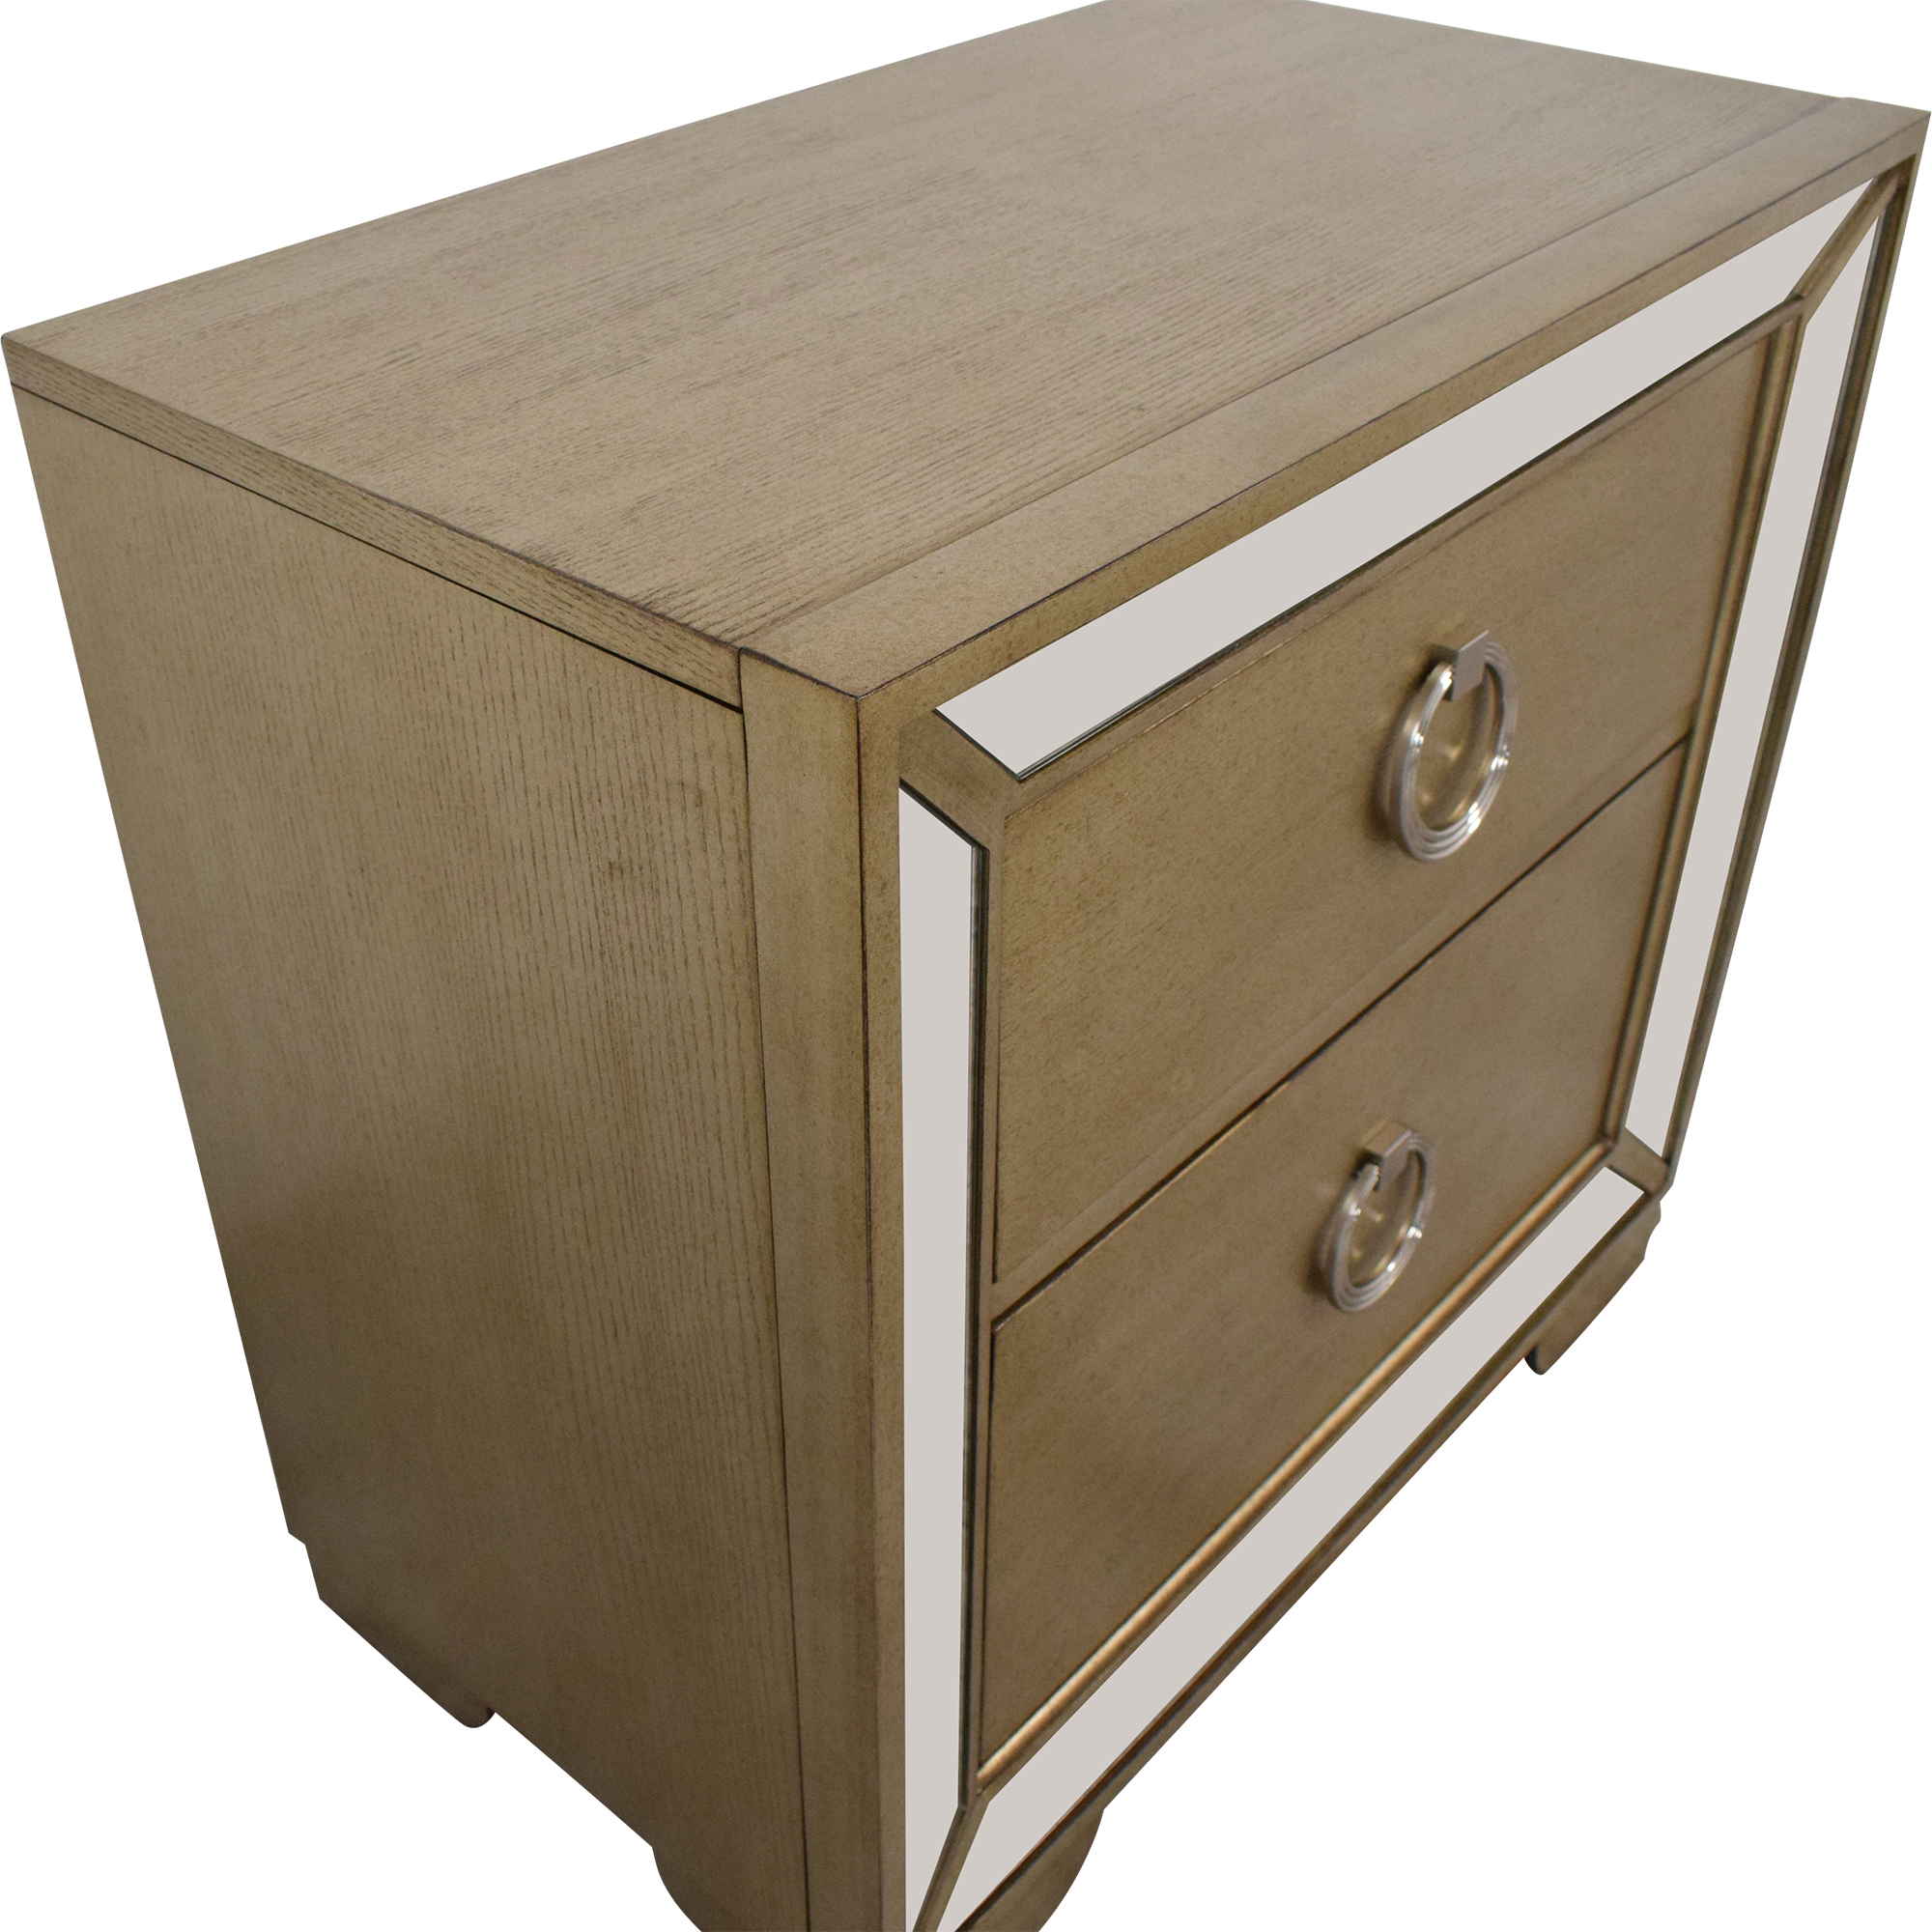 Macy's Ailey Nightstand / Tables